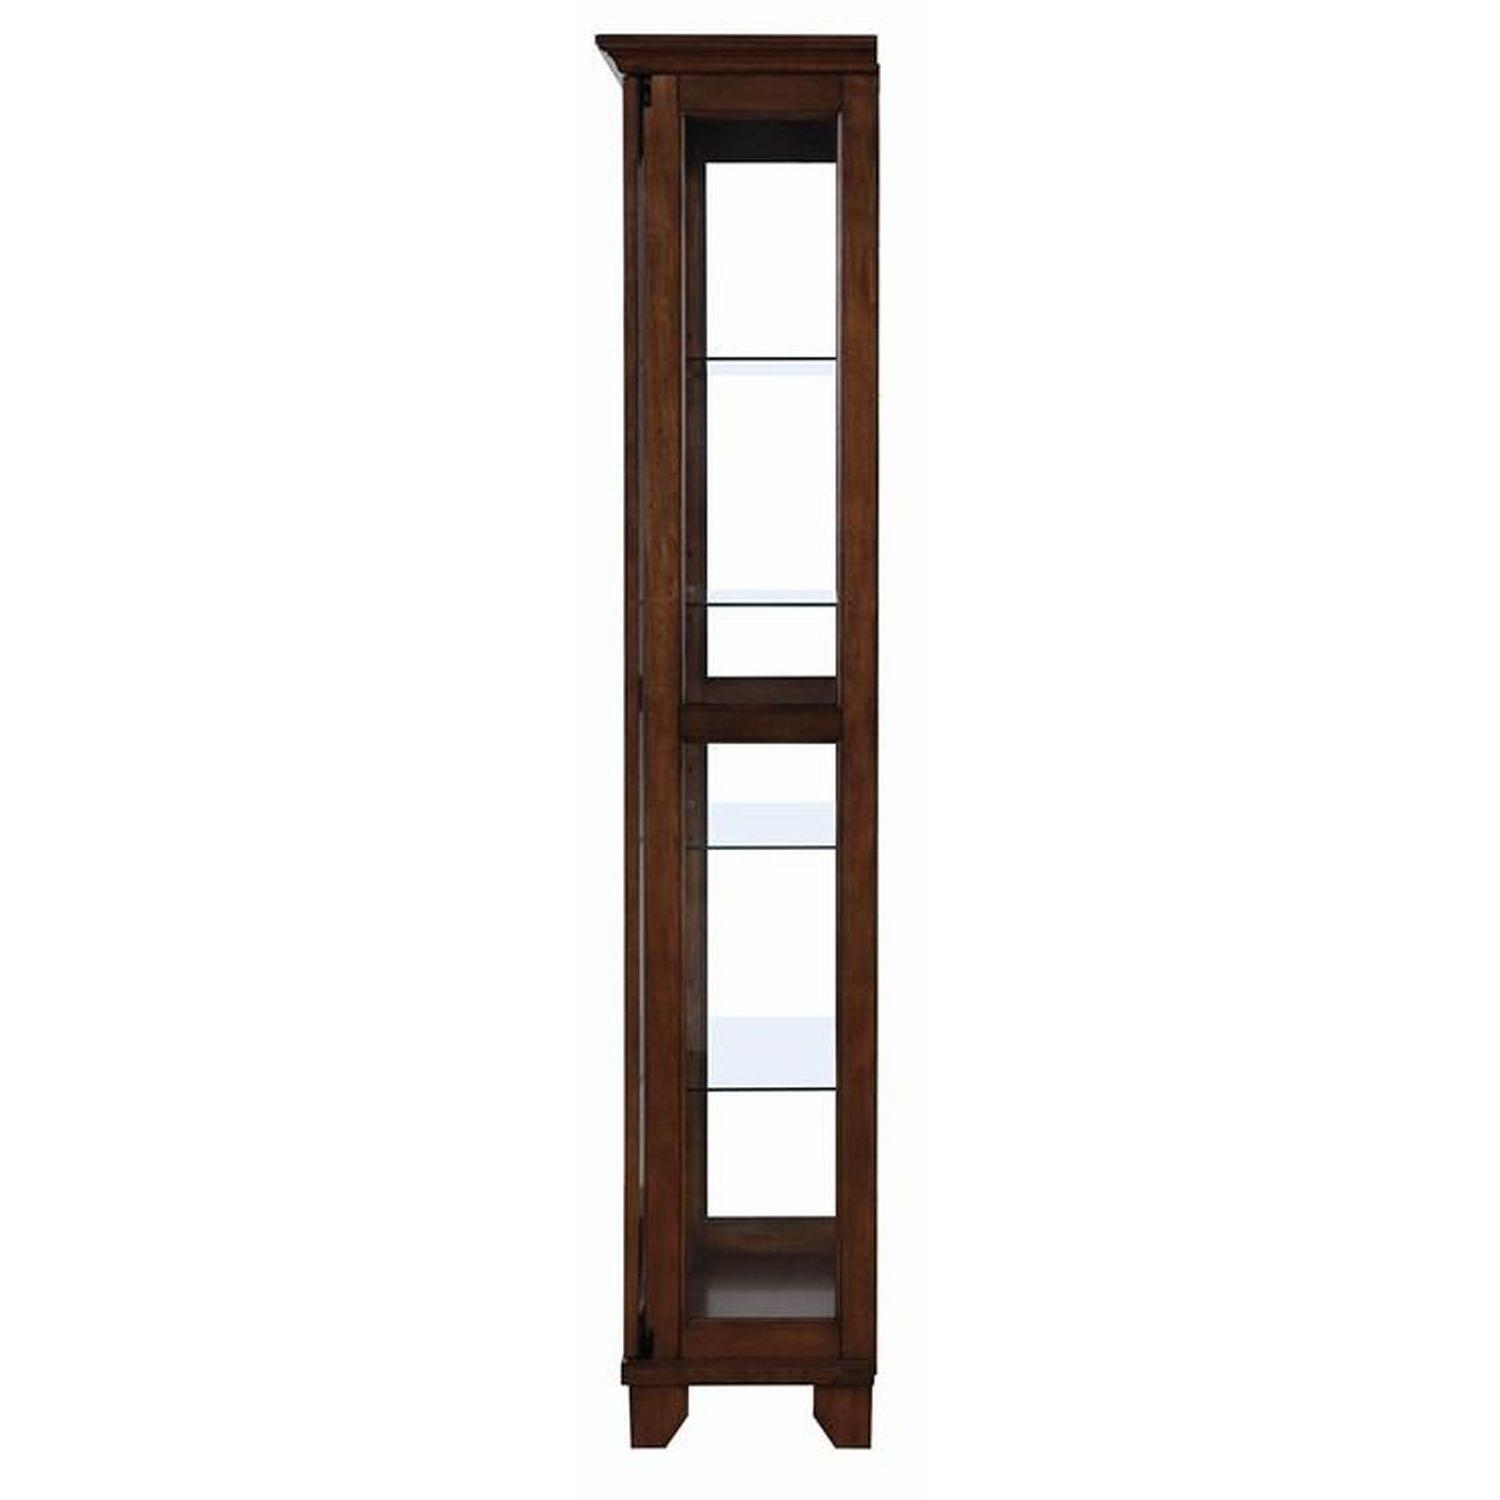 Curio Cabinet in Chestnut Finish w/ Glass Panels - image-1